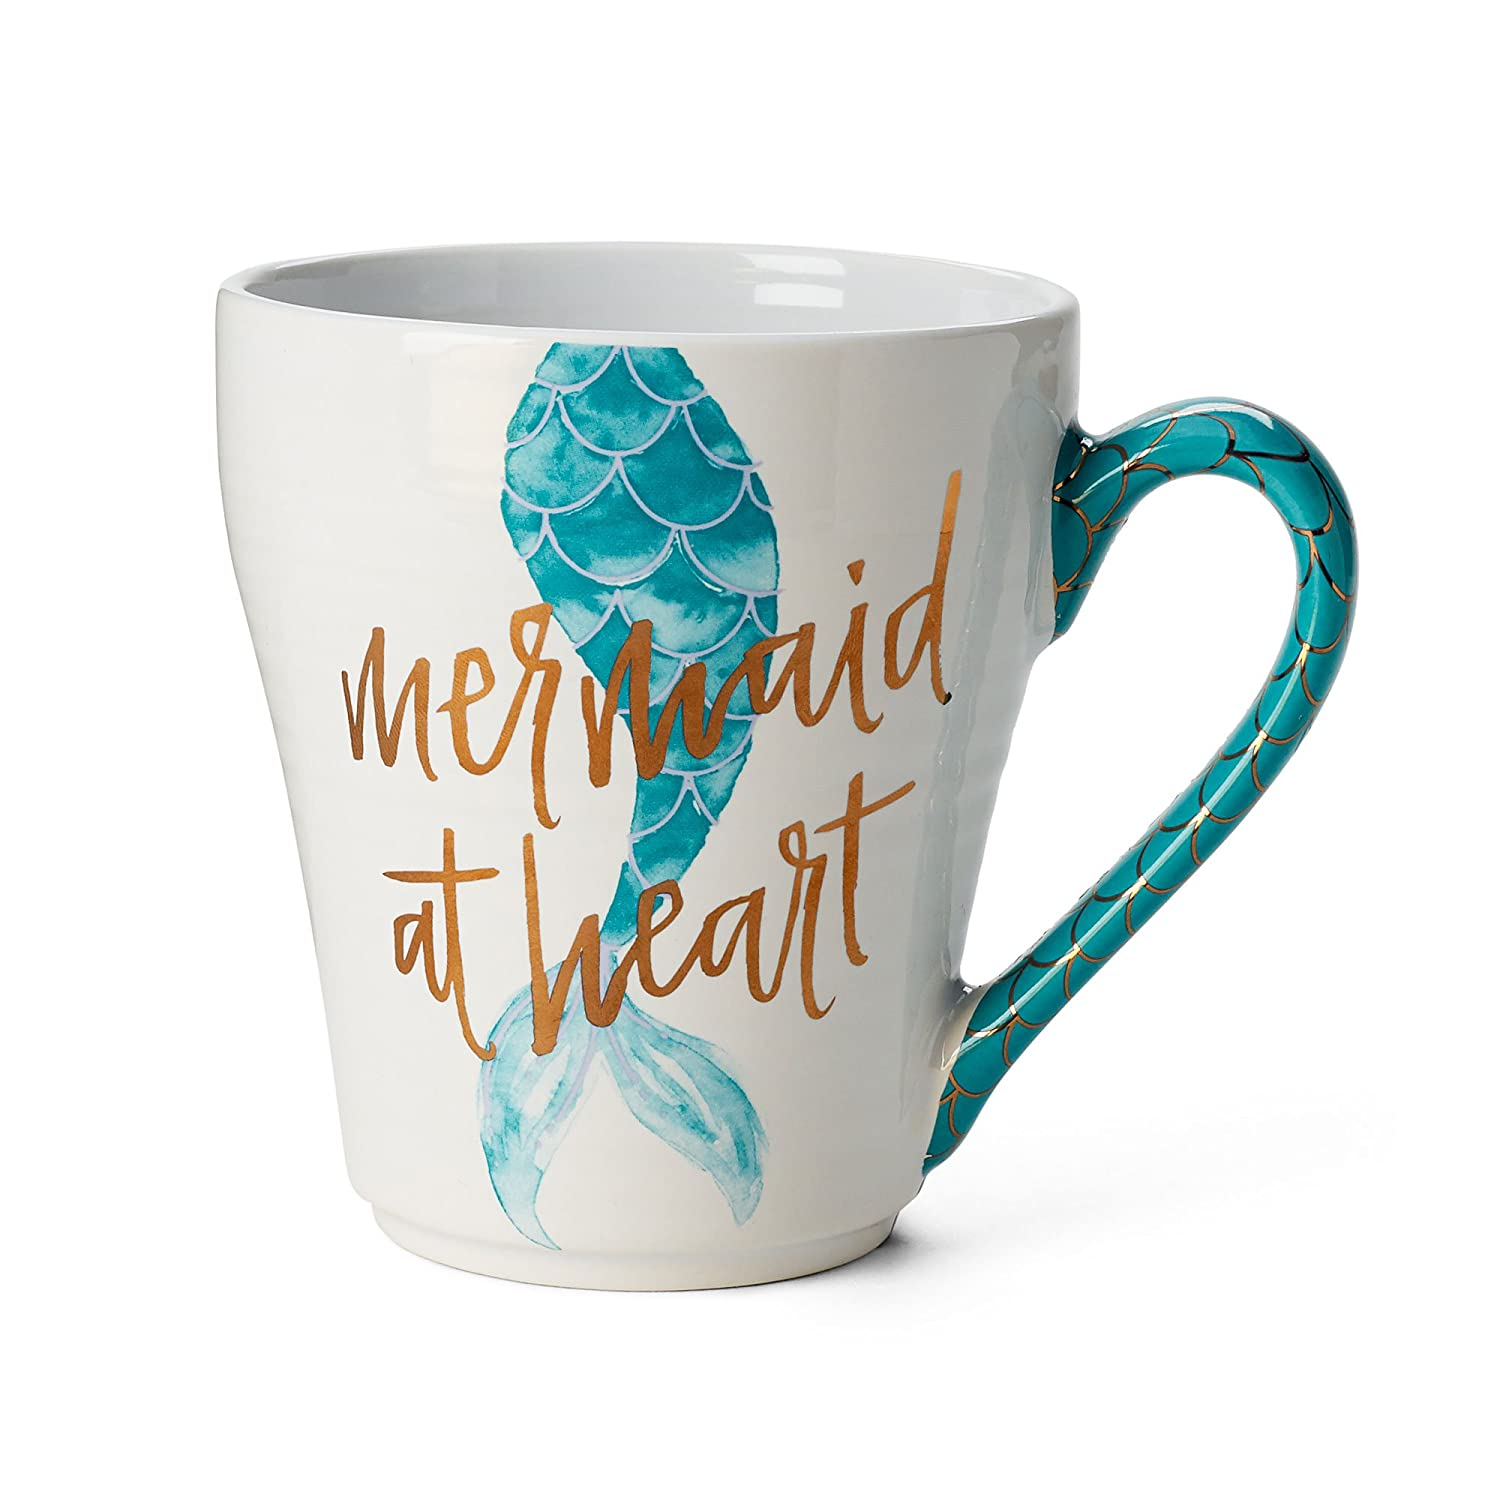 Ceramic Reusable Coffee / Tea Mug: Cute Novelty Mermaid at Heart Hot Coffee or Tea Cup (Teal)